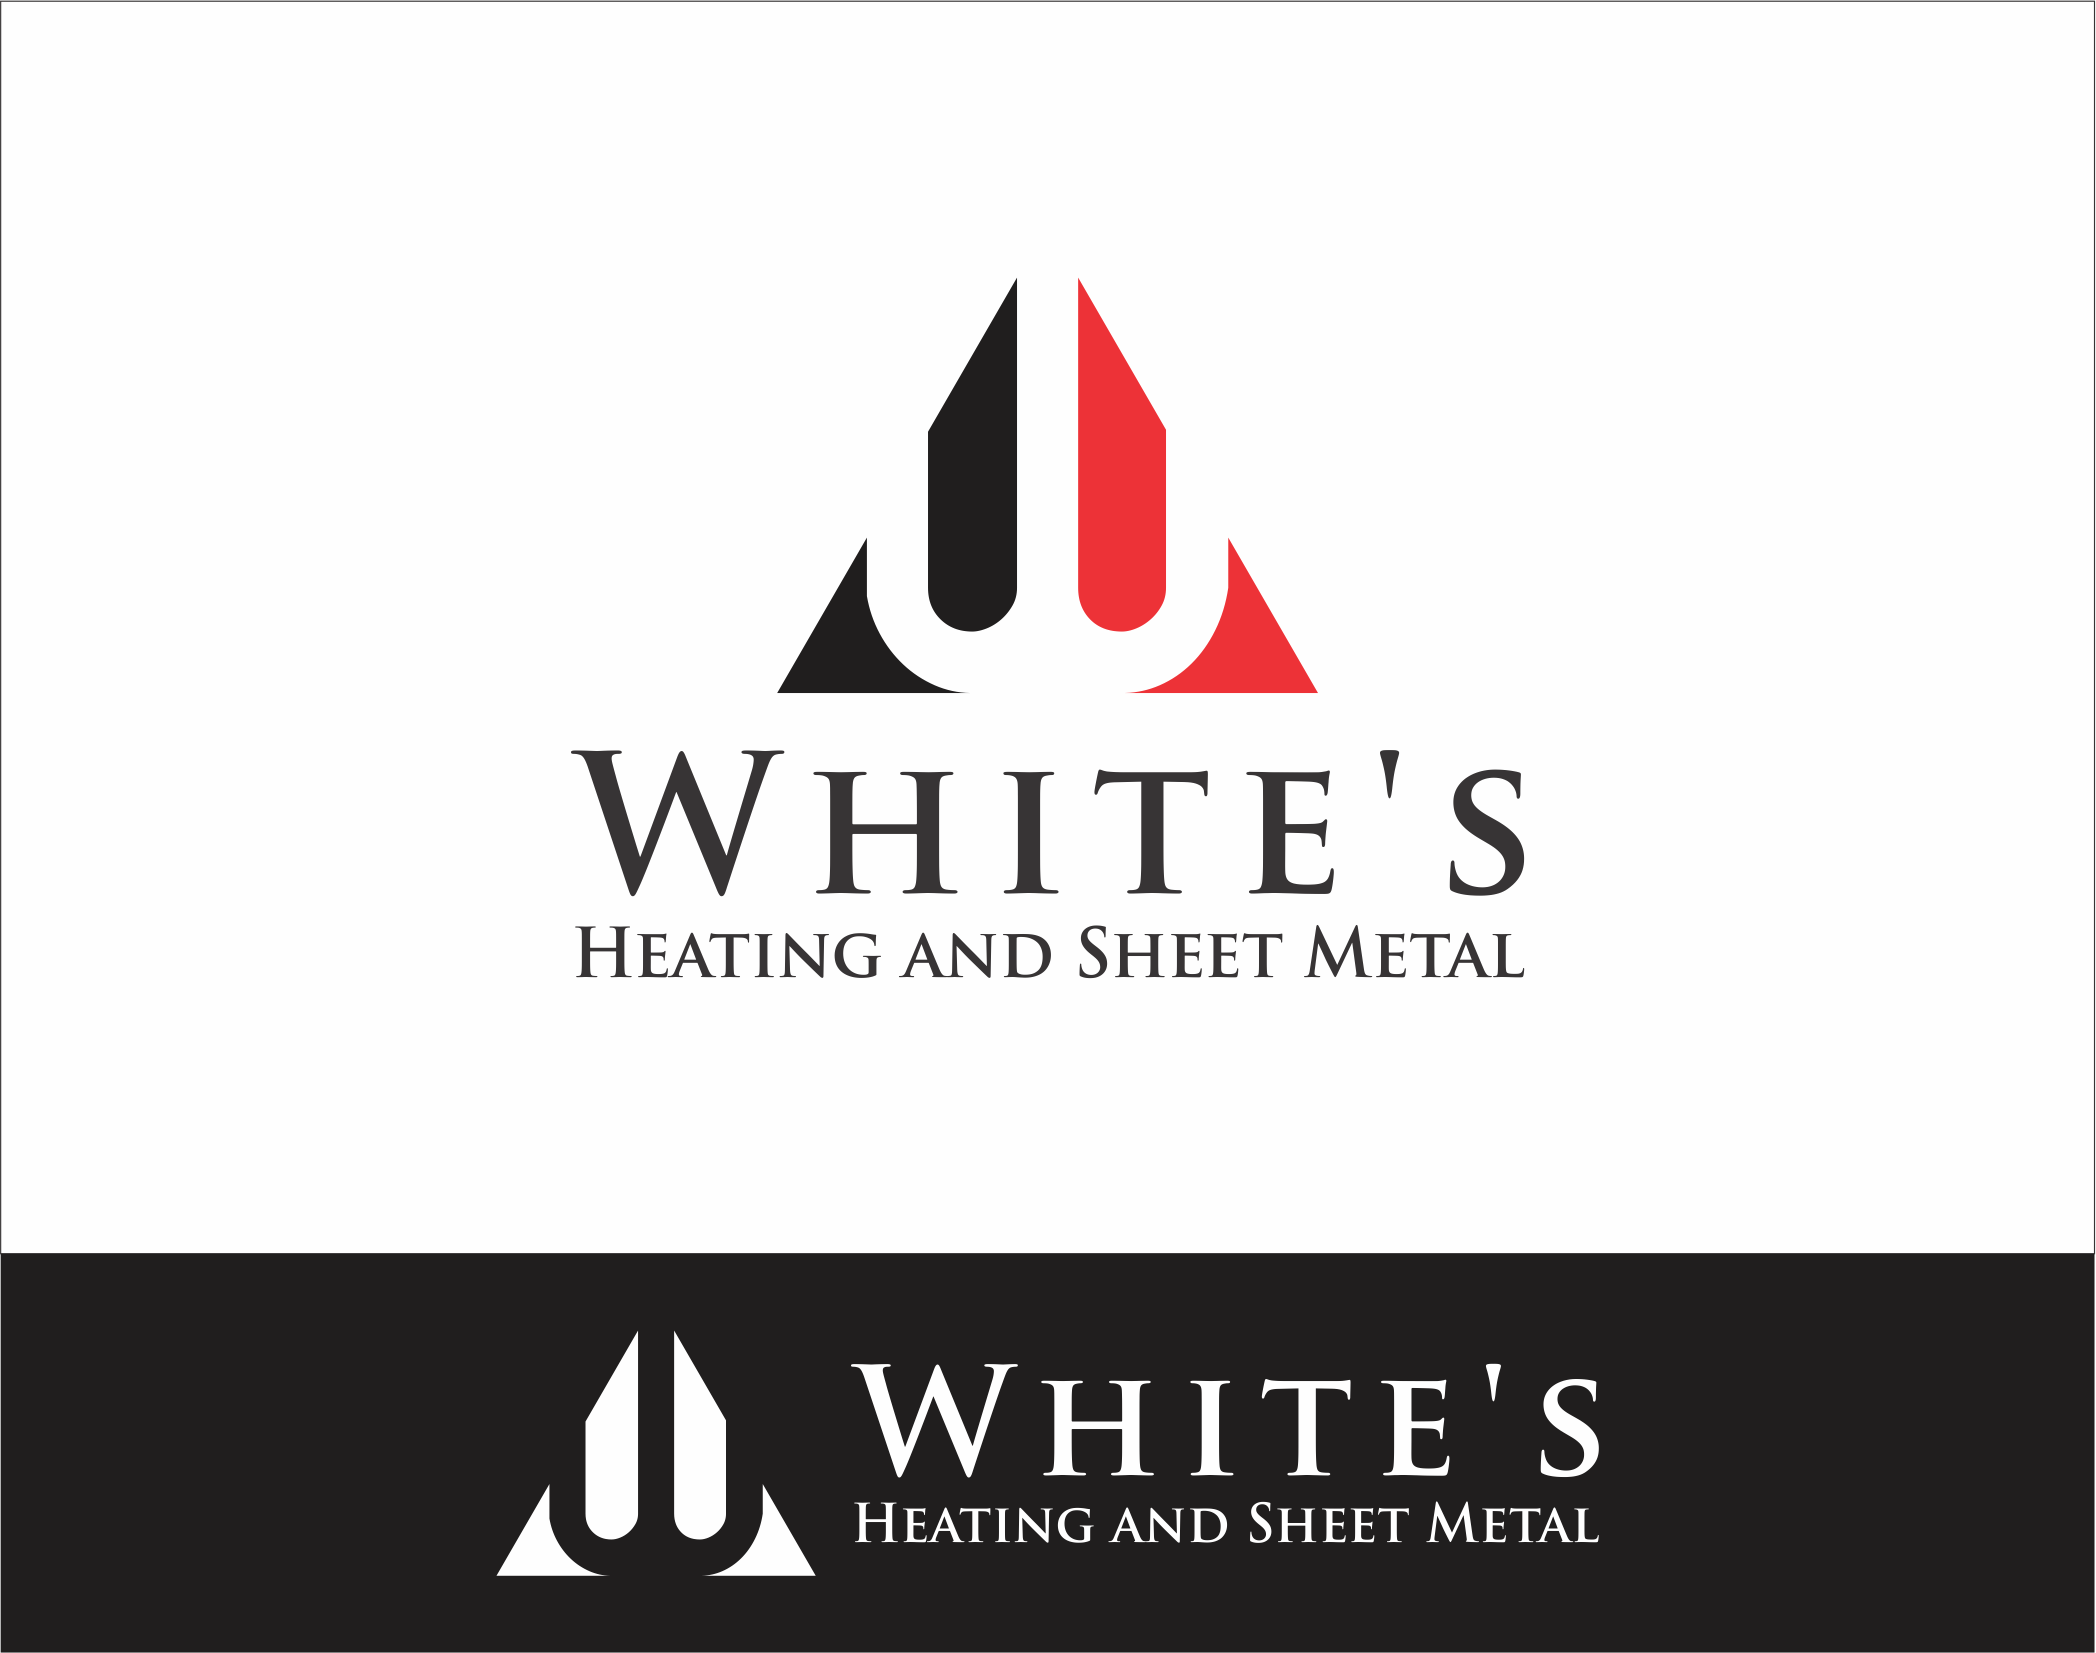 Logo Design by Armada Jamaluddin - Entry No. 132 in the Logo Design Contest Imaginative Logo Design for White's Heating and Sheet Metal.